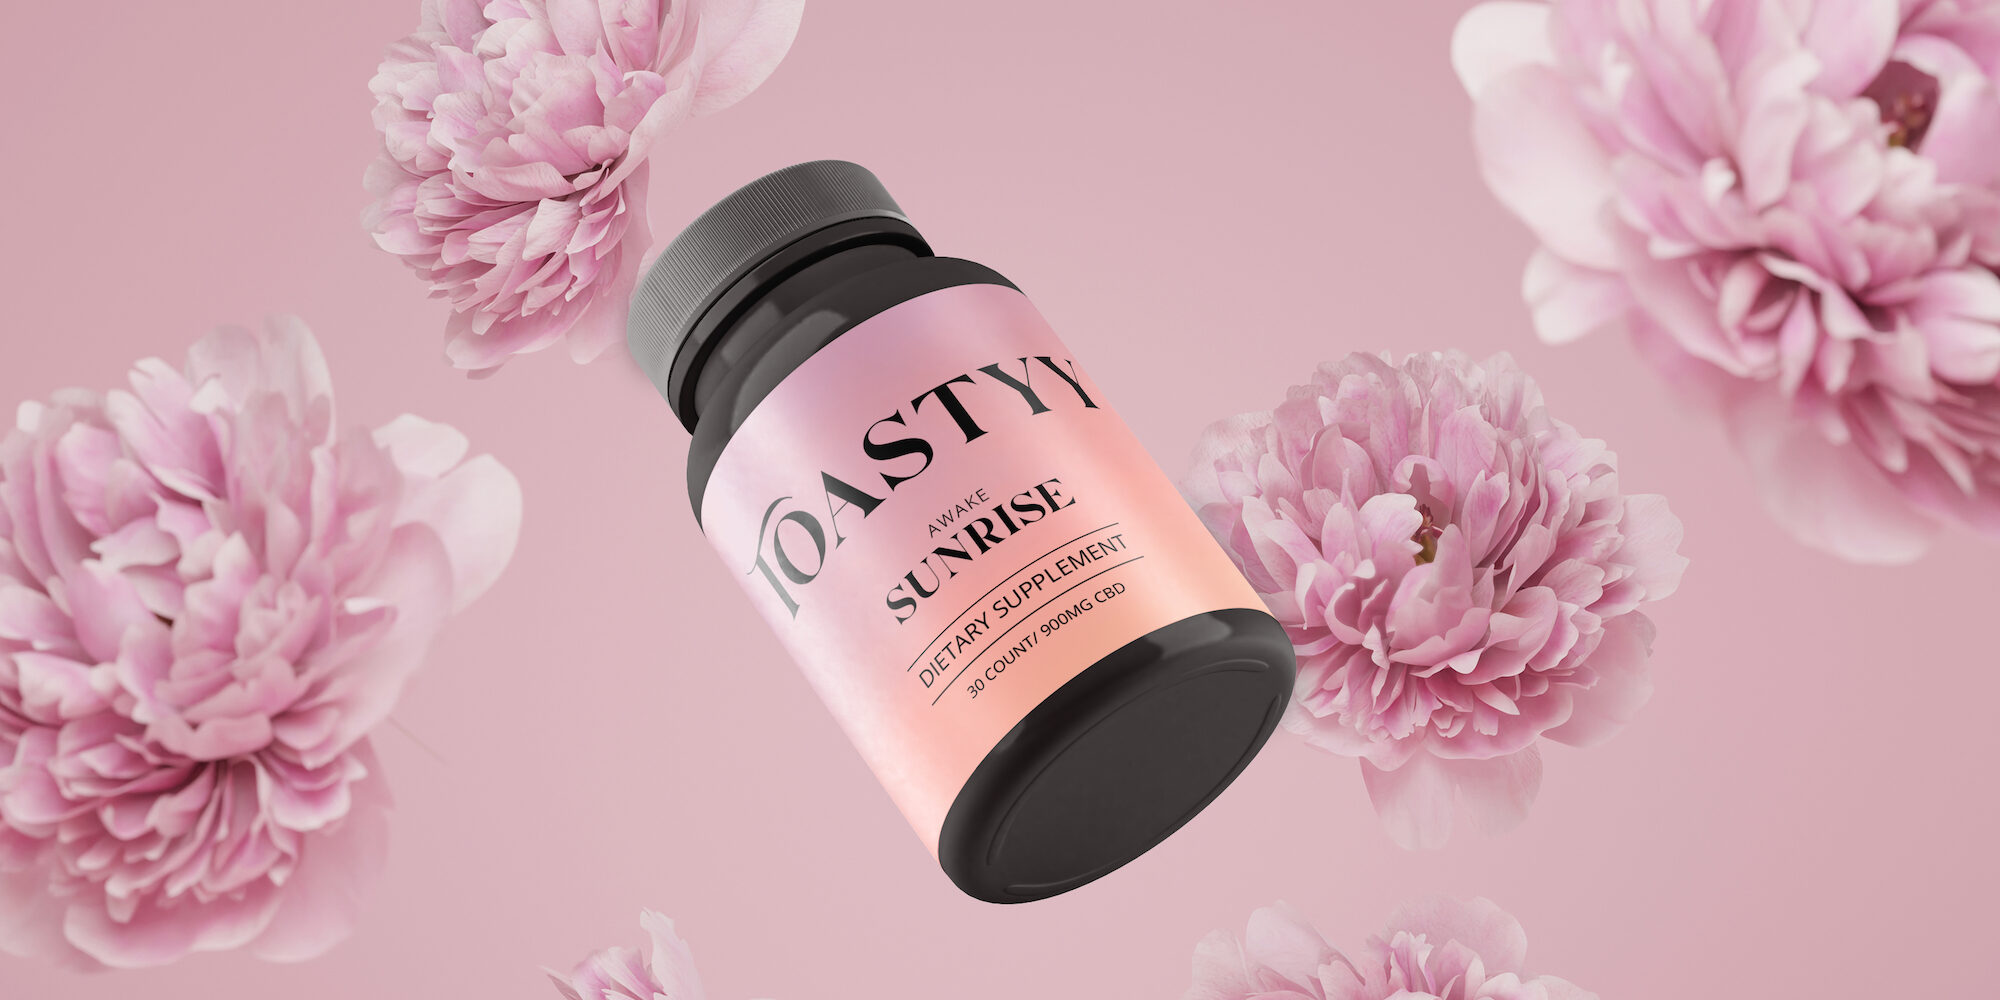 Former Collegiate Athlete And Model Jamie Lea Has Gone From Being Laid Off To Launching CBD Brand Toastyy